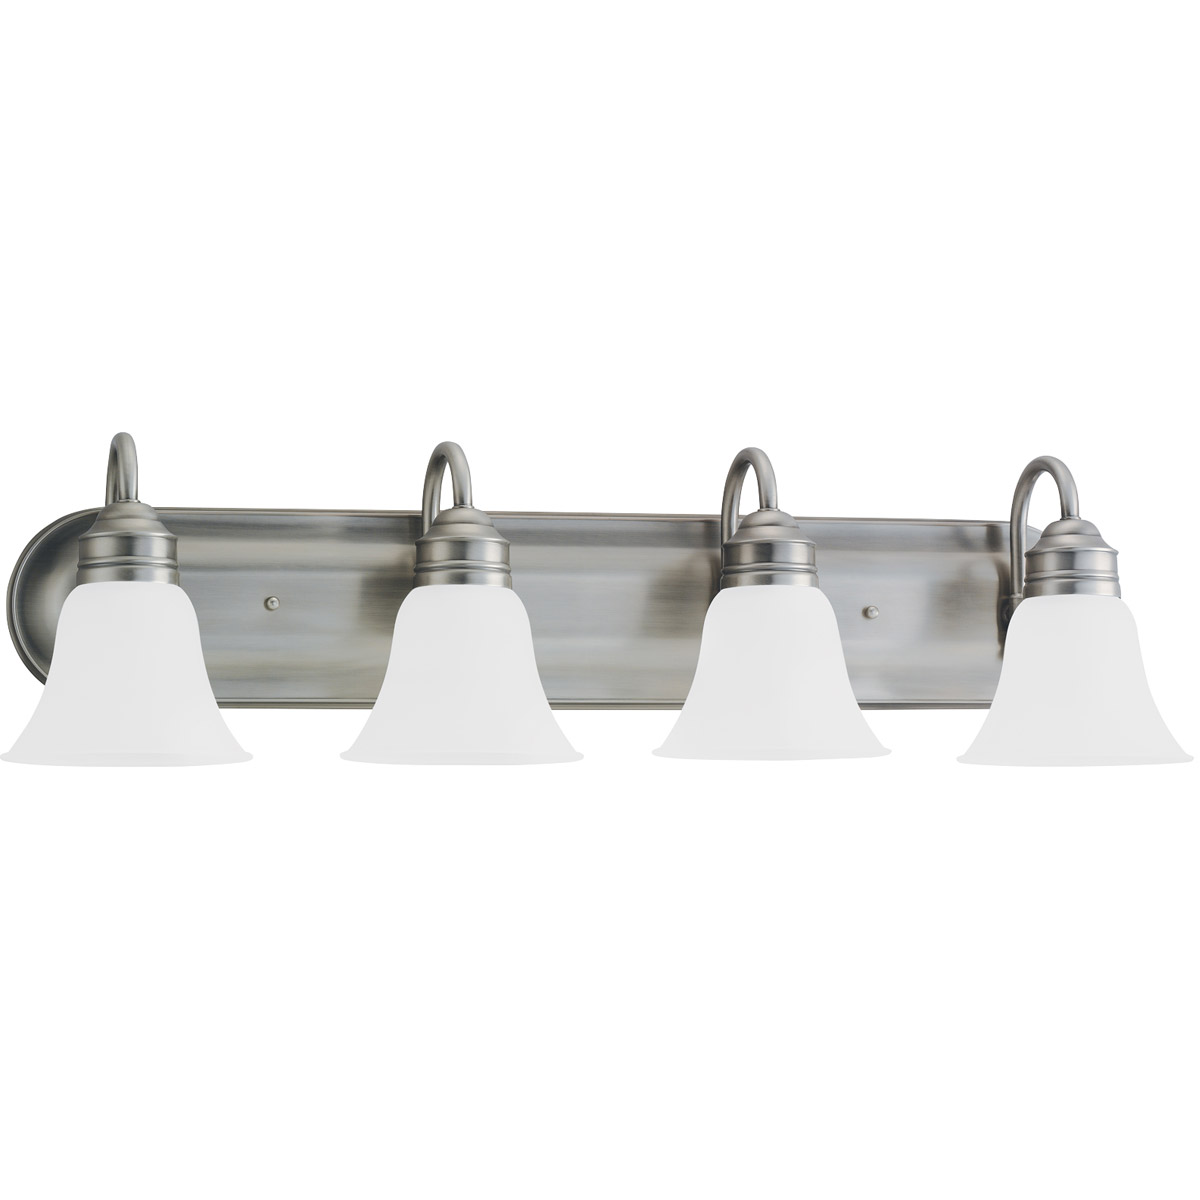 Sea Gull Lighting Gladstone 4 Light Bath Vanity in Antique Brushed Nickel 44853-965 photo